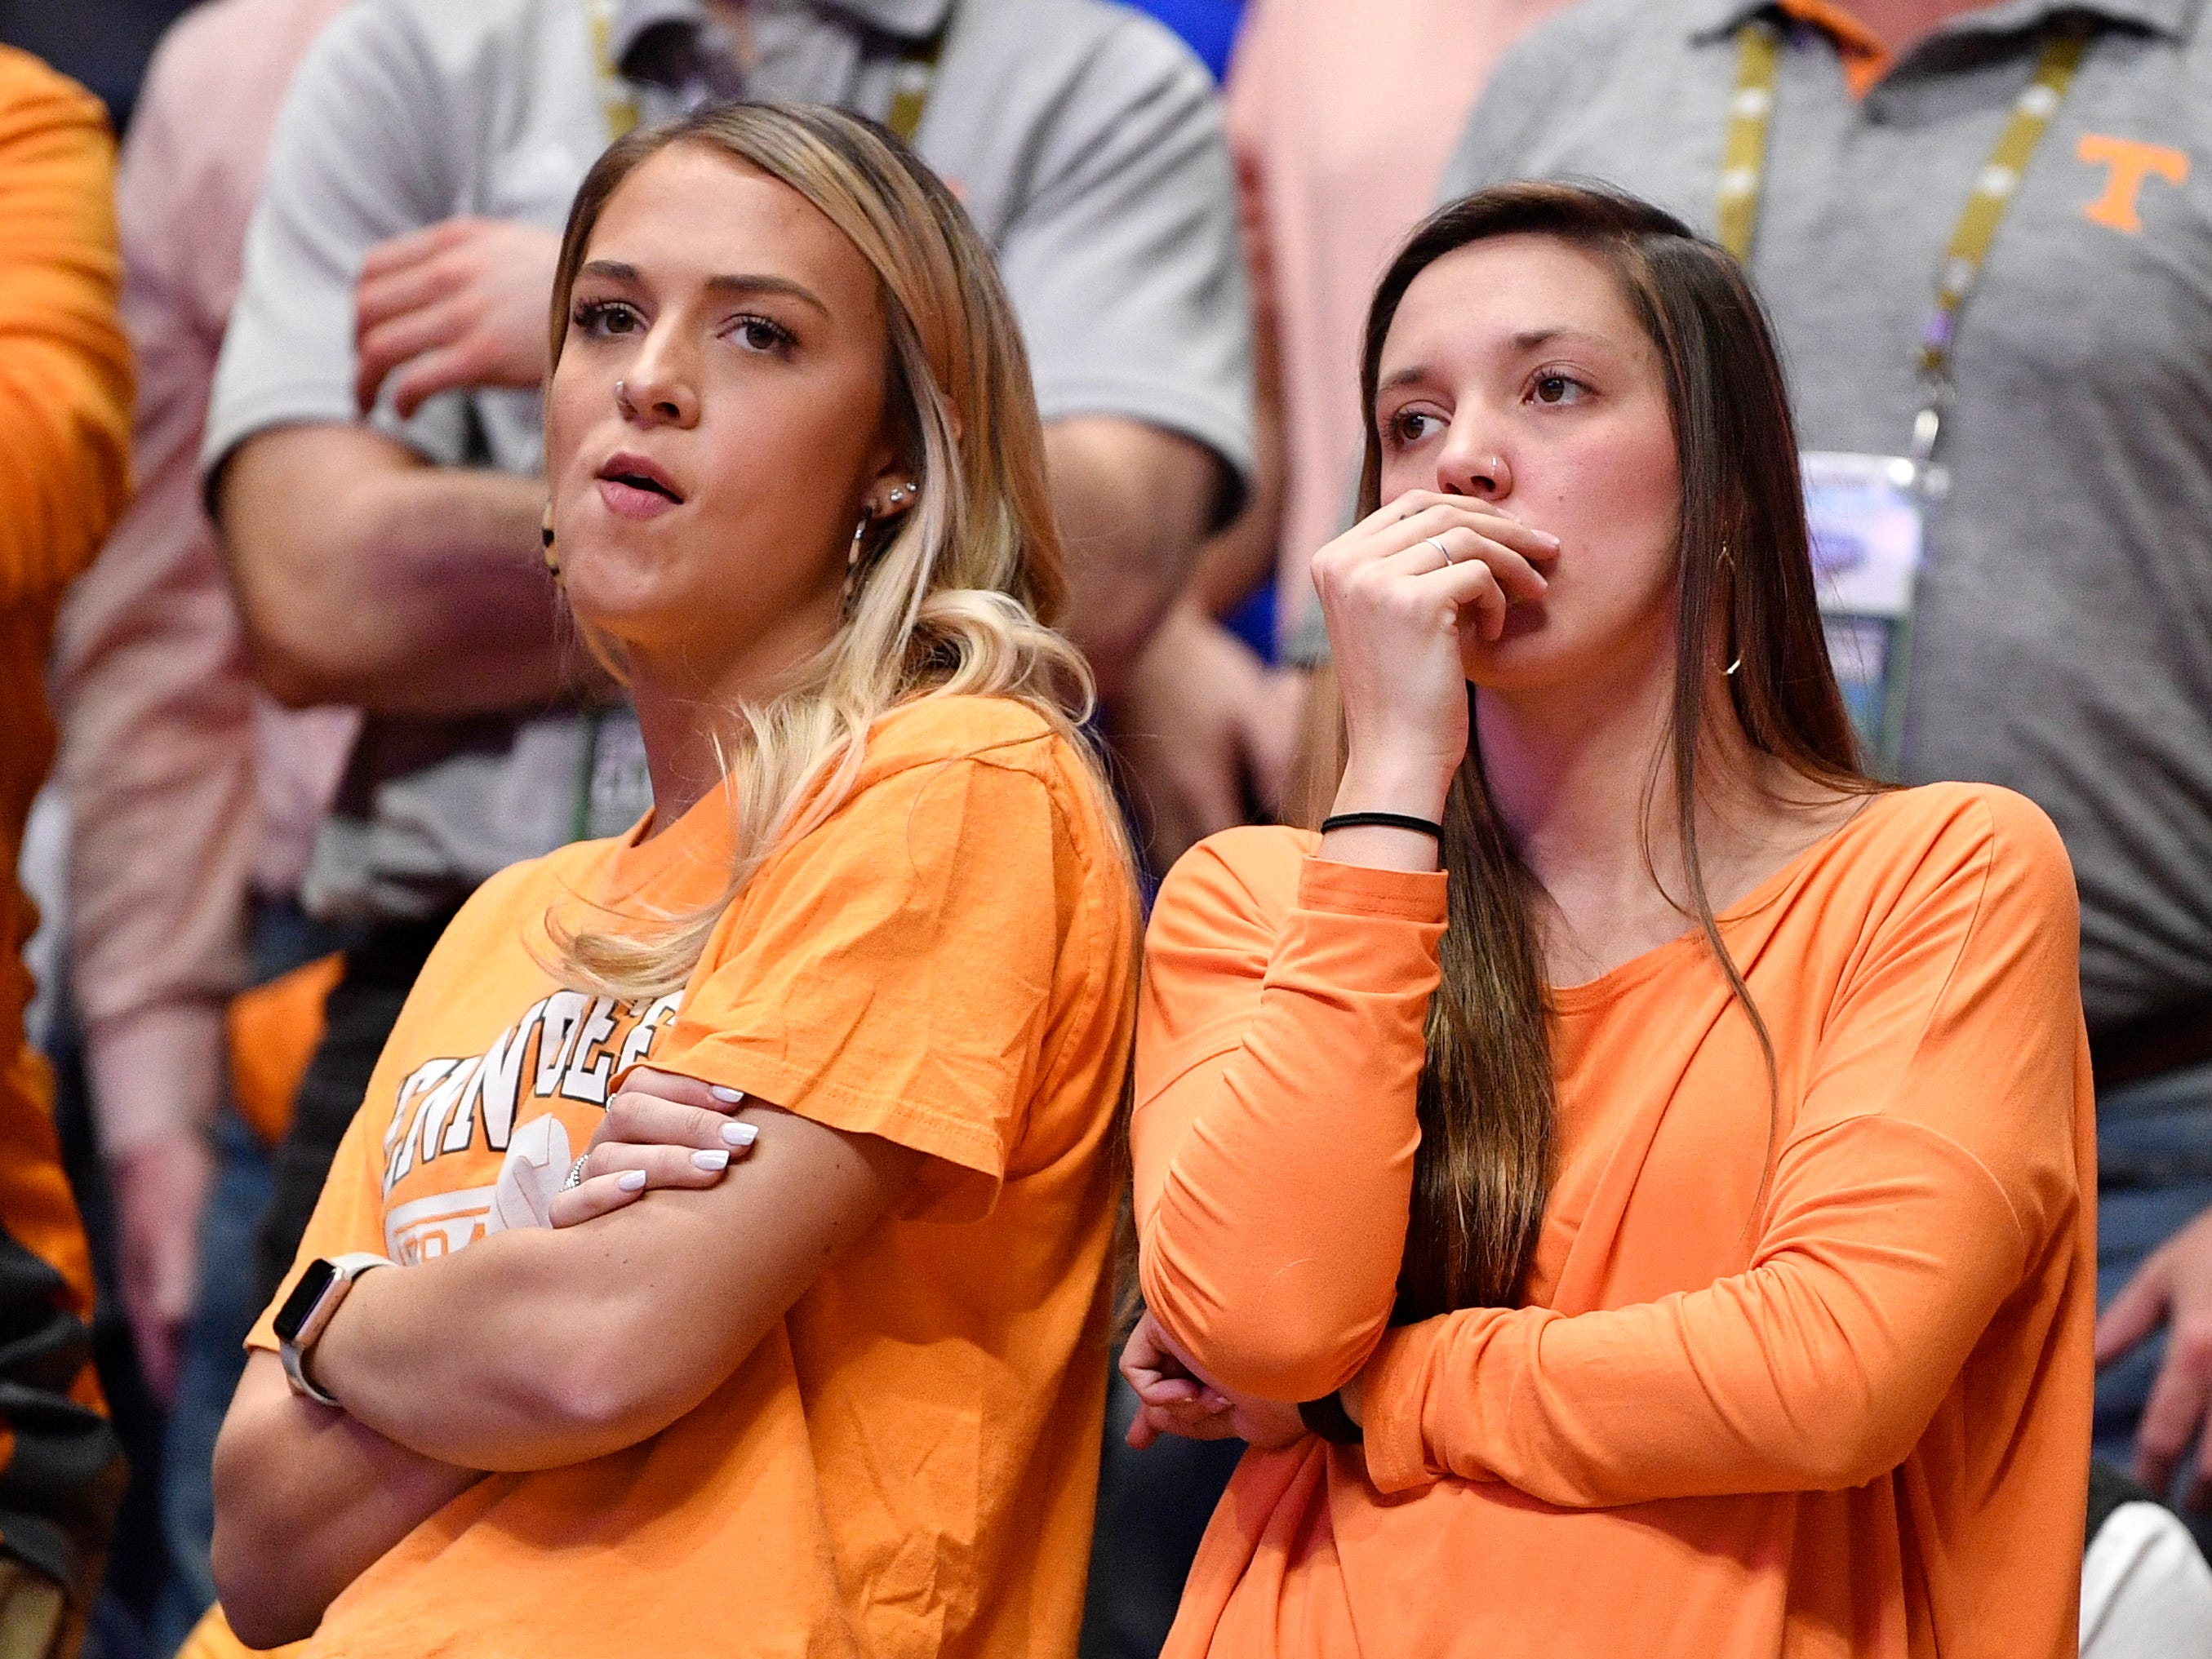 UT fans react during the first half of the SEC Men's Basketball Tournament championship game against Auburn at Bridgestone Arena in Nashville, Tenn., Sunday, March 17, 2019.